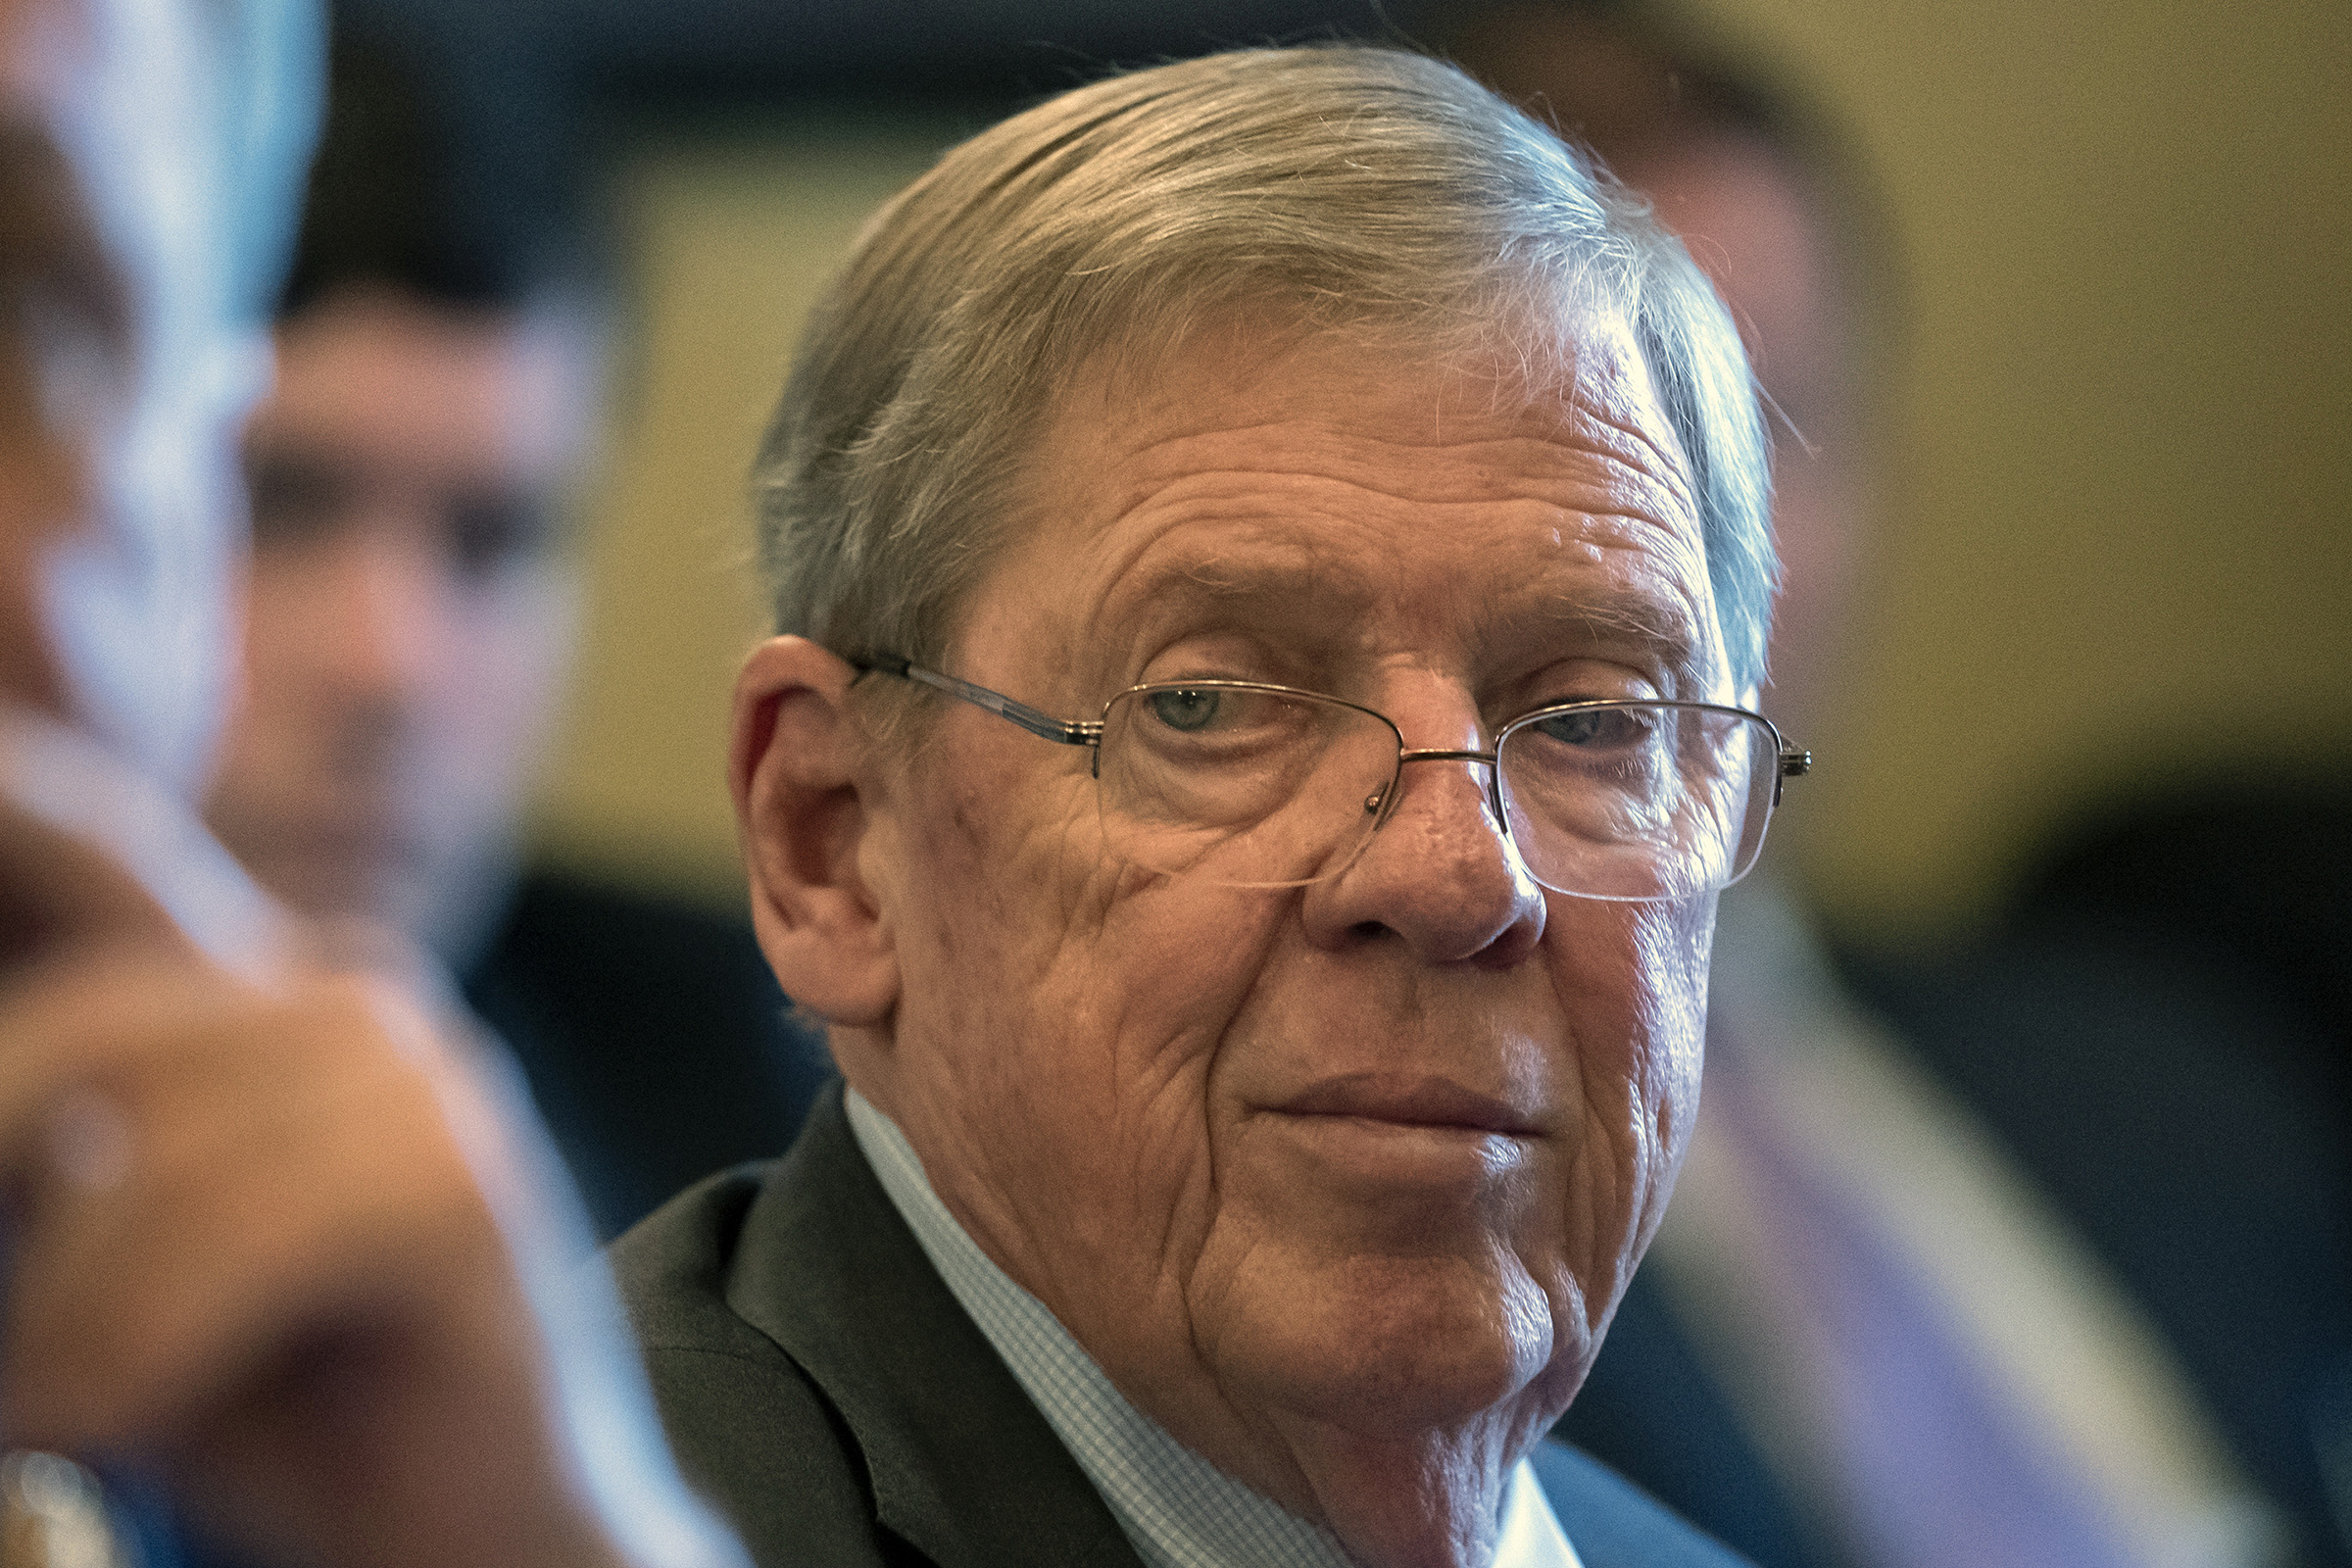 Johnny Isakson announced he is retiring from the U.S. Senate in December 2019, citing declining health.                    The Georgia Republican is pictured leading a meeting on Capitol Hill in Washington on Feb.14, 2019.